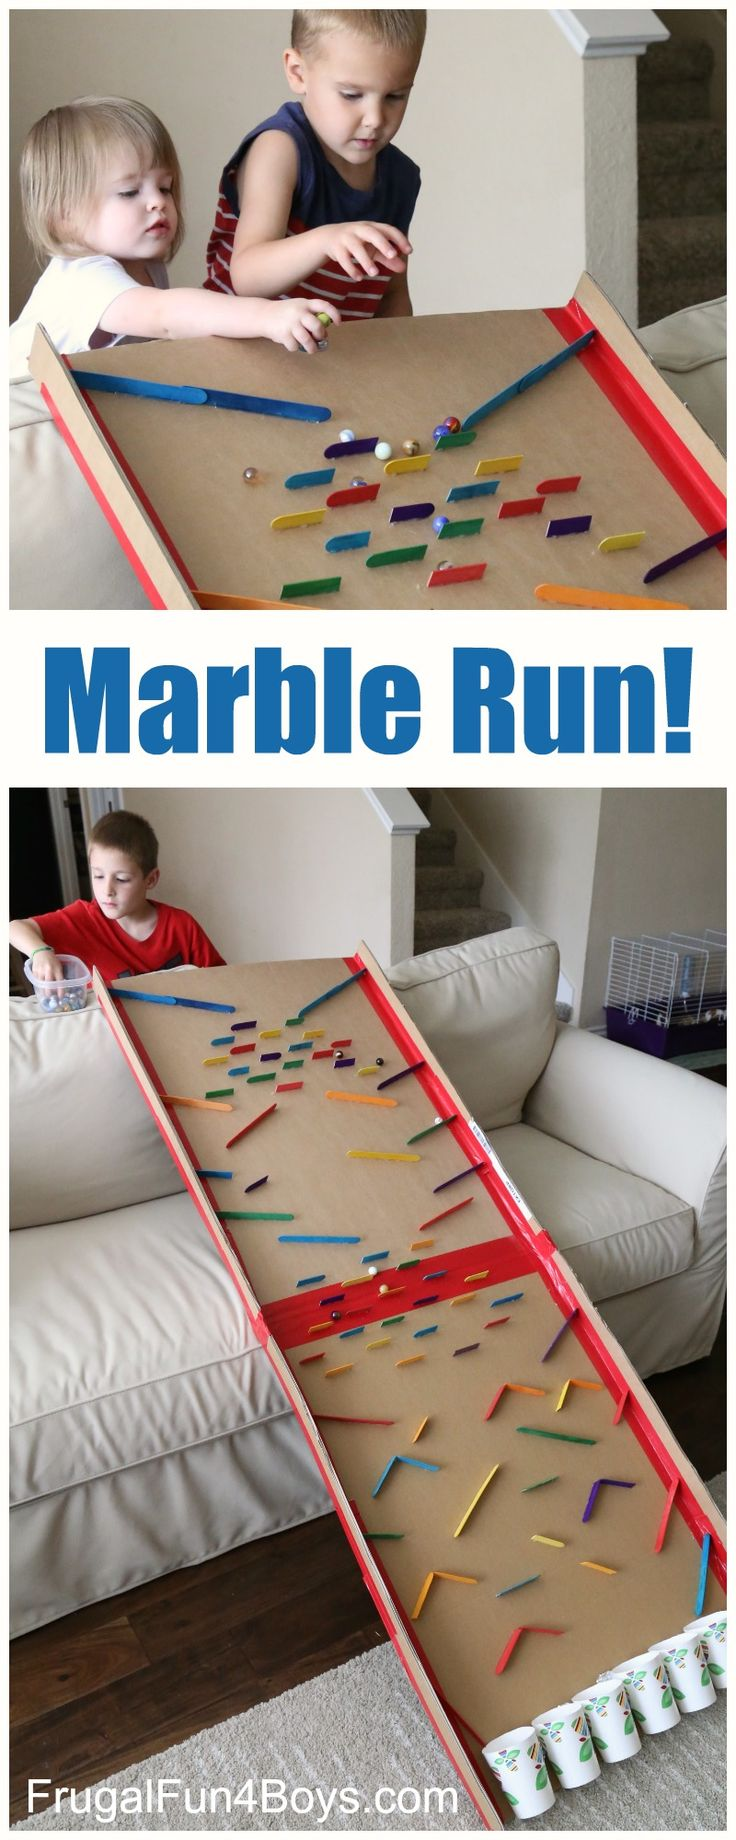 Turn a Cardboard Box into an Epic Marble Run - Great engineering challenge for kids. Fun group activity to see what each group comes up with!